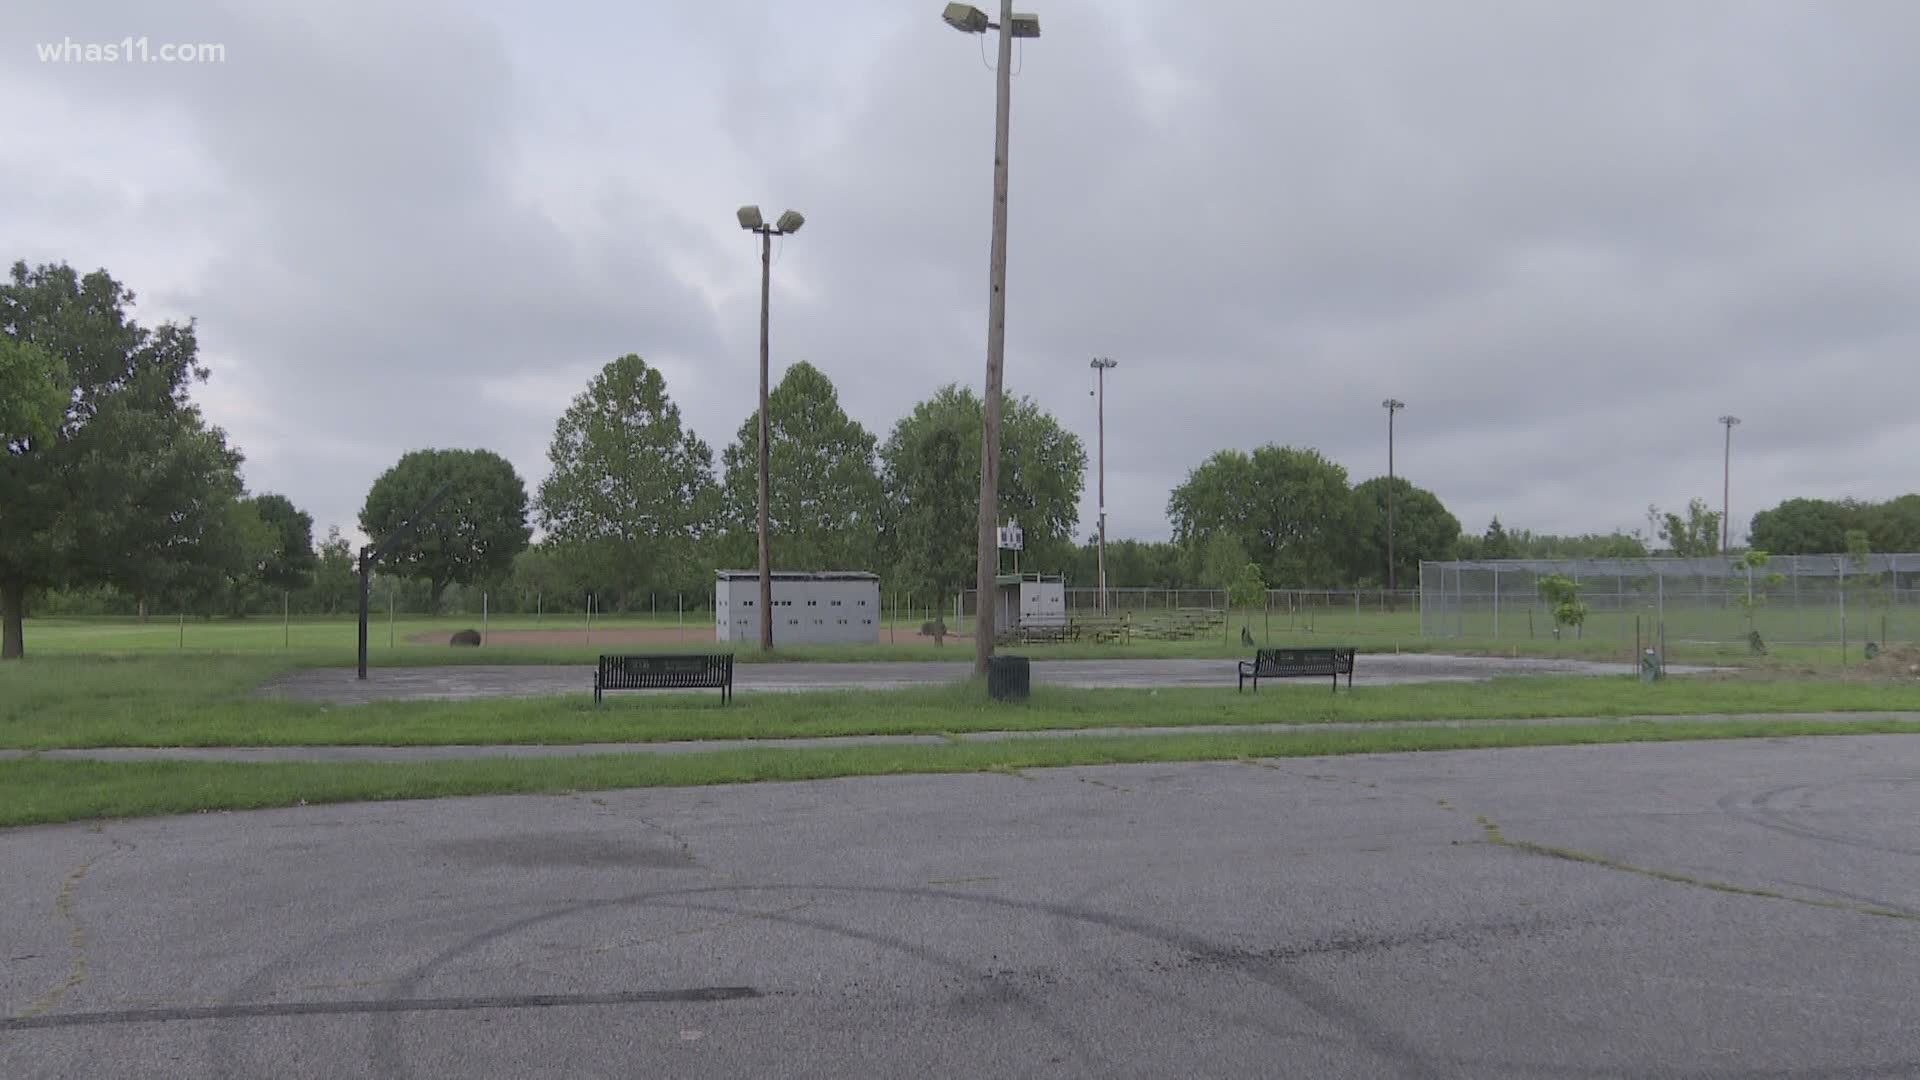 Louisville Park To Feature Mural Of Breonna Taylor Whas11 Com